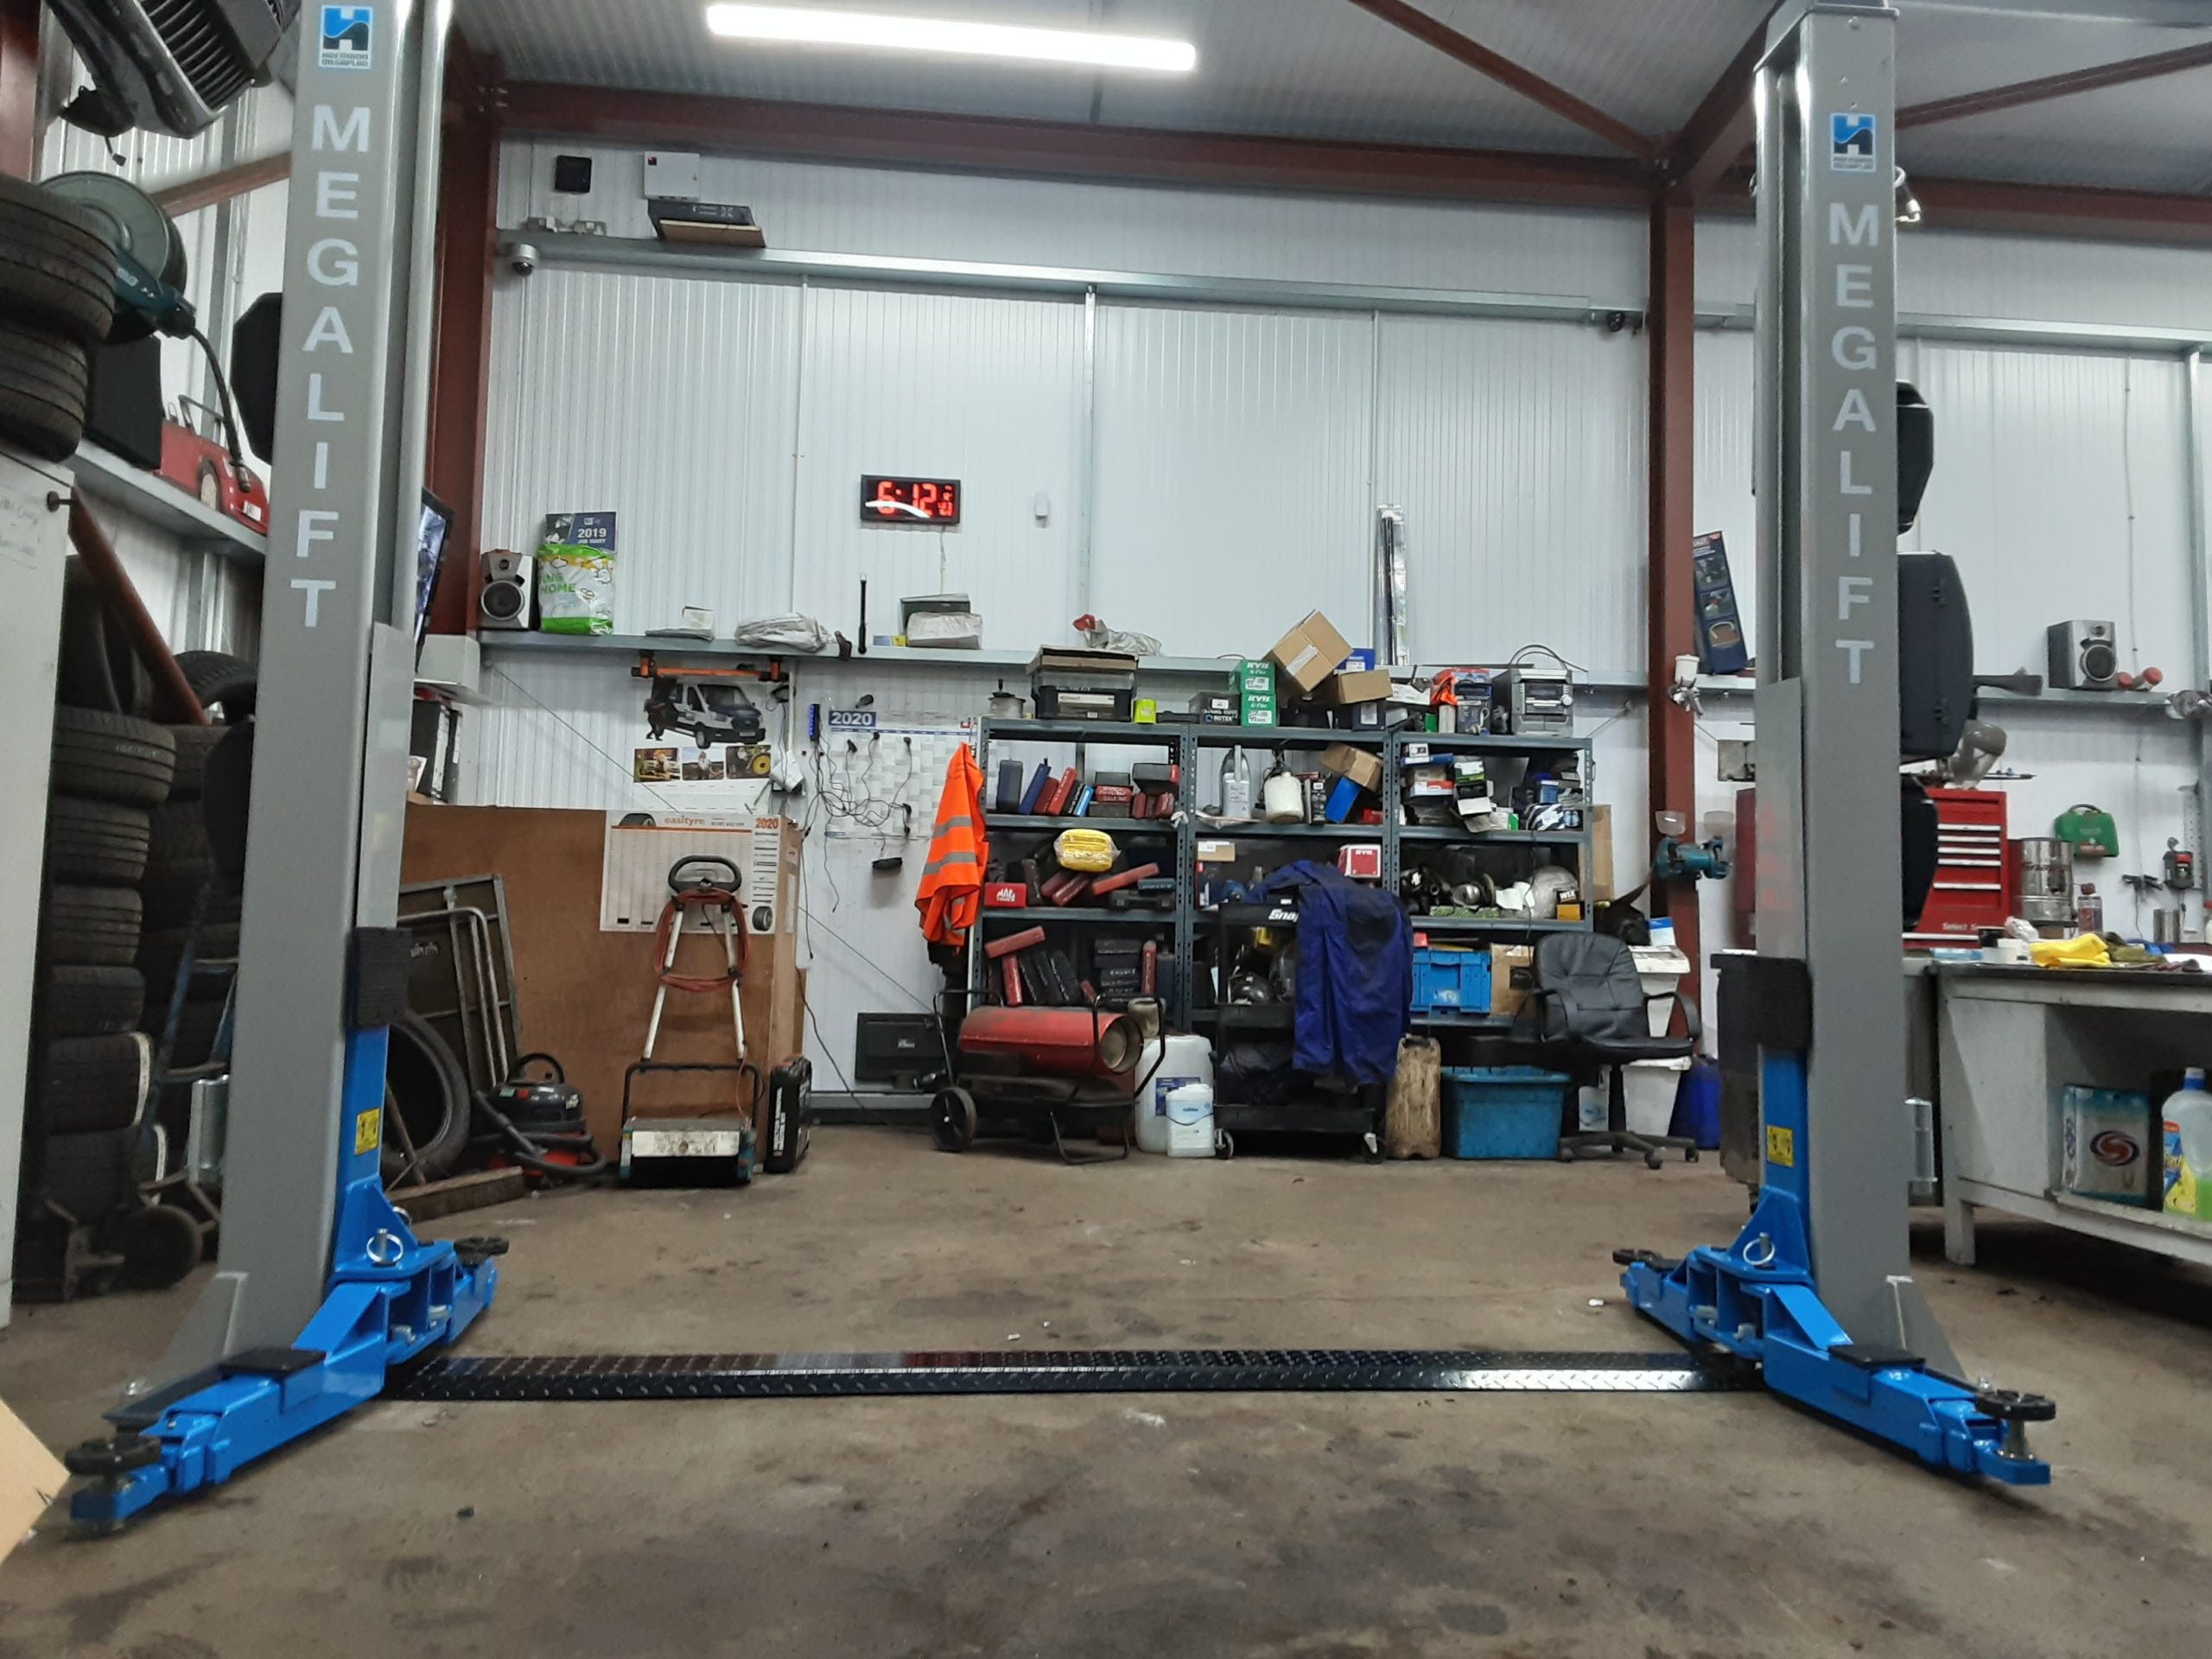 A really nice looking megalift 4000-3 installation, supplied by Hofmann Megaplan, and installed by ISN Garage Assist at Inverkeithing Repair Centre.